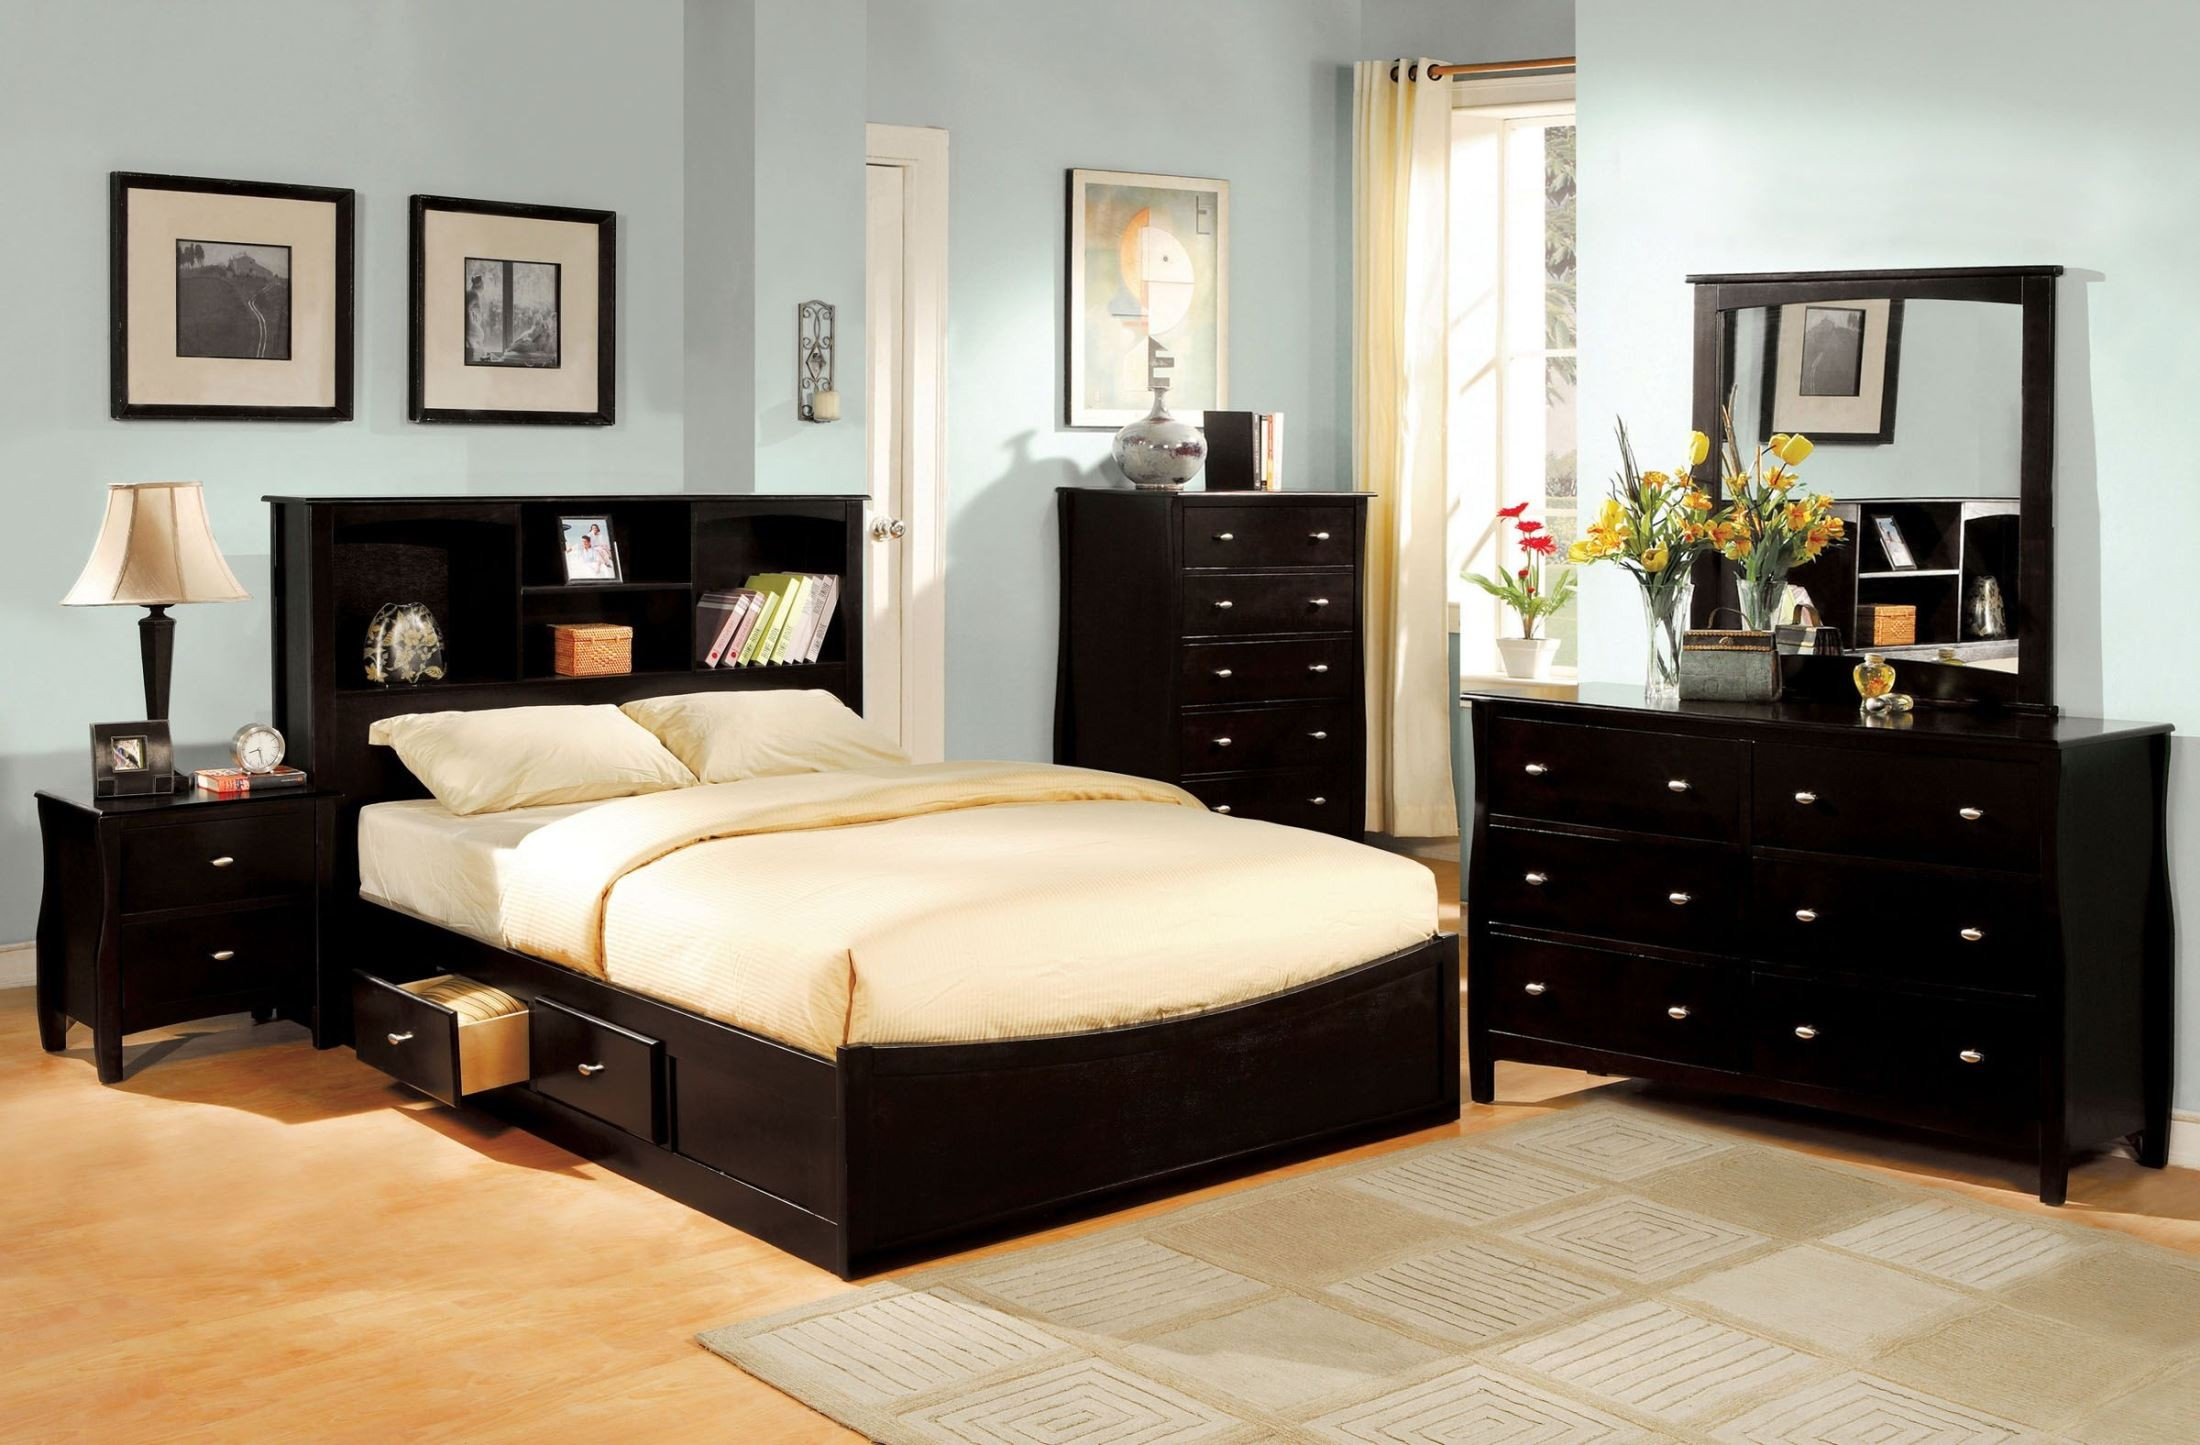 Discount Platform Bed Sets